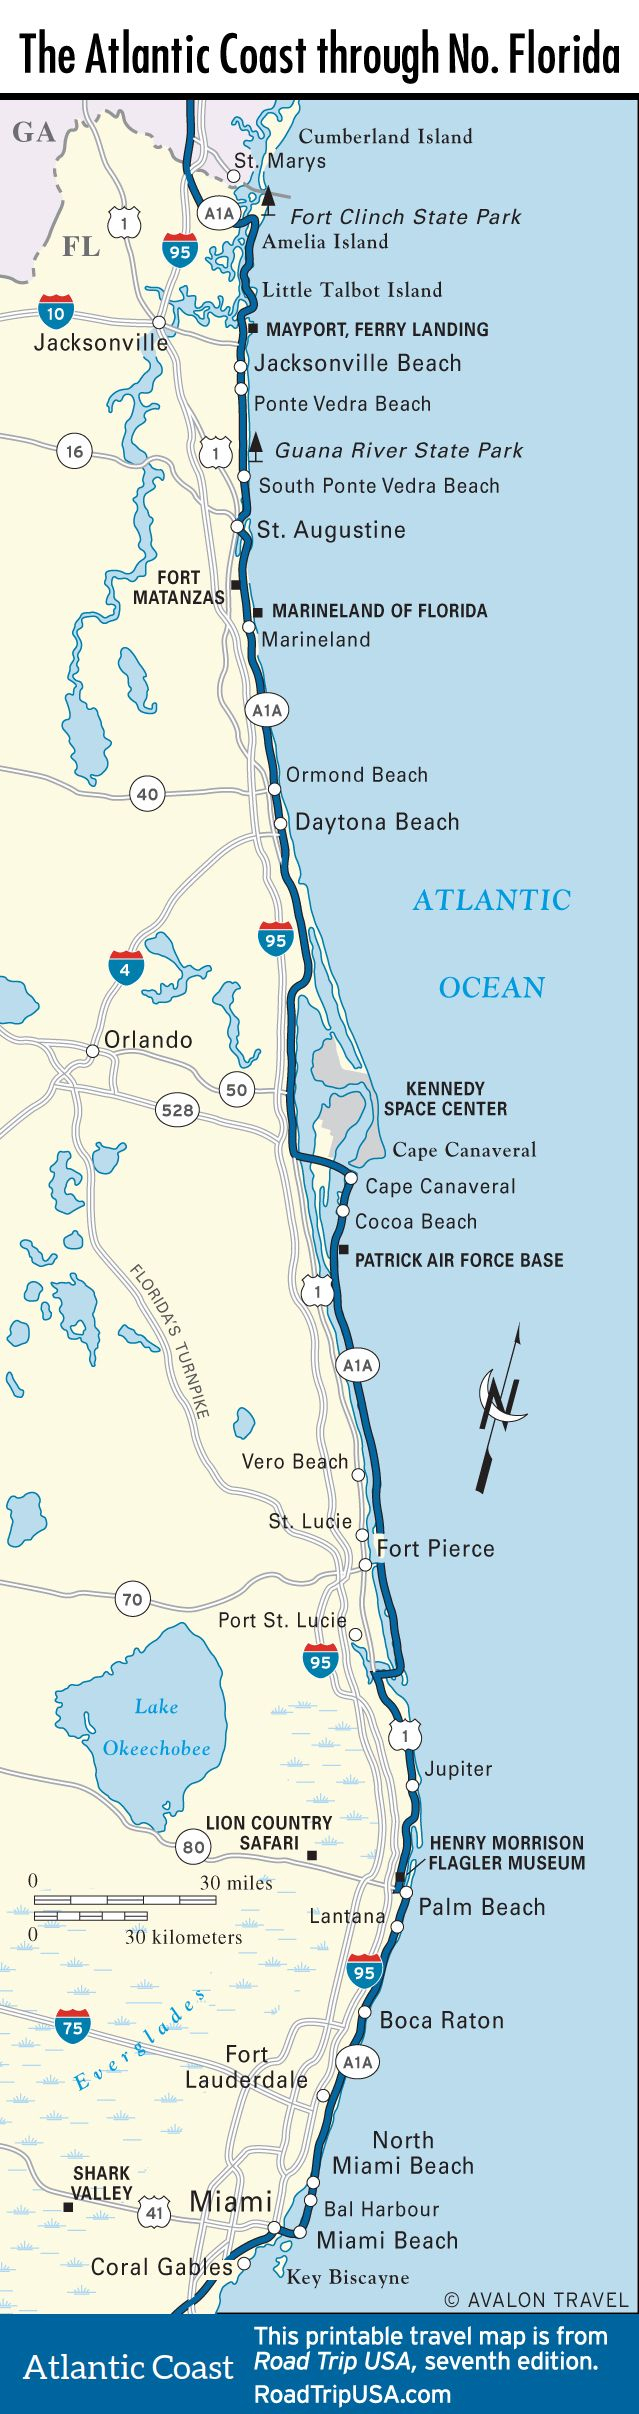 Map Of The Atlantic Coast Through Northern Florida. | Florida A1A - Map Of Florida Vacation Spots